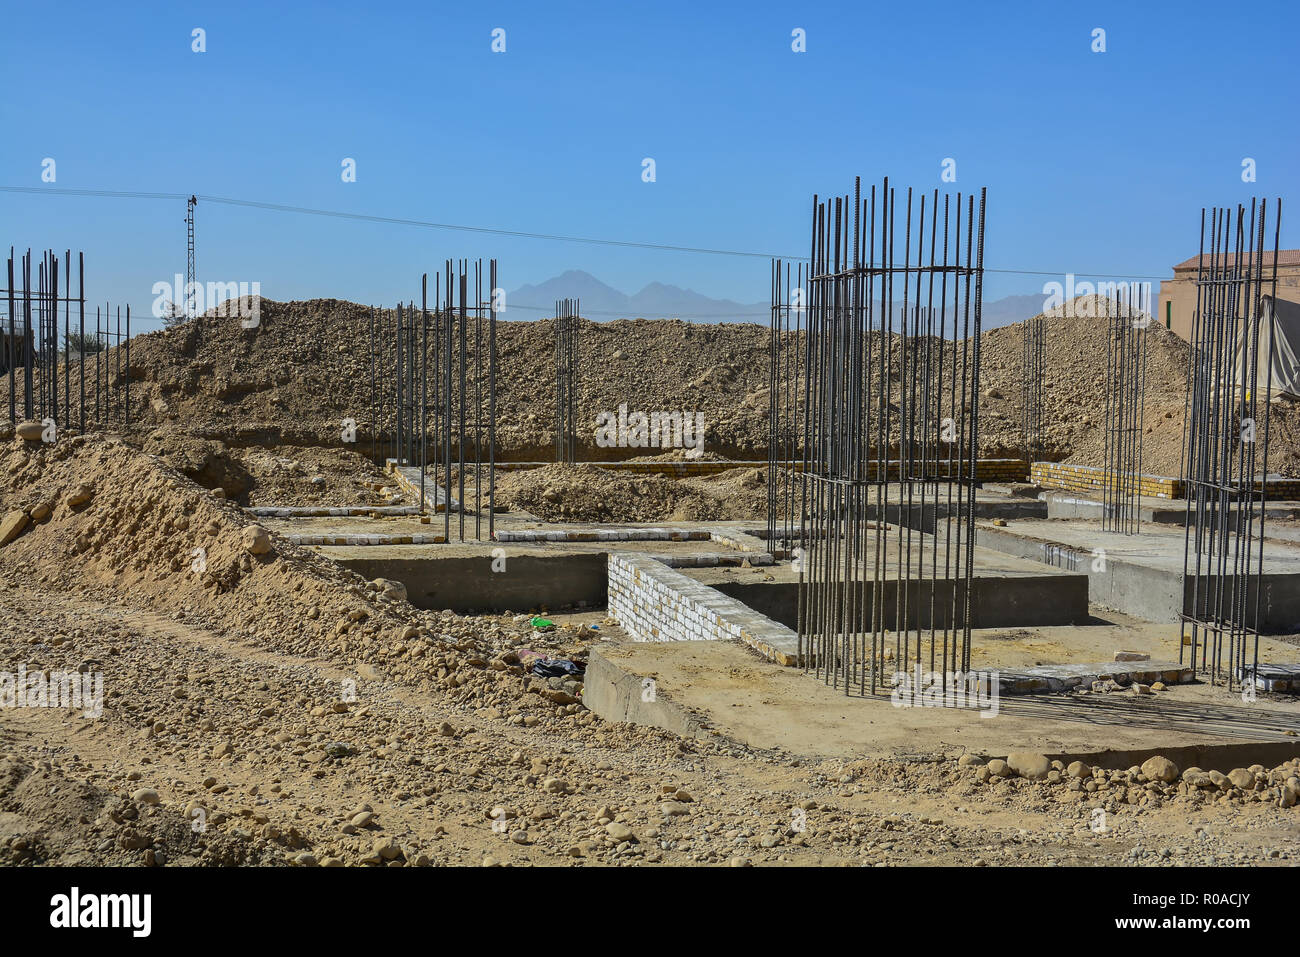 Building under Construction - Stock Image